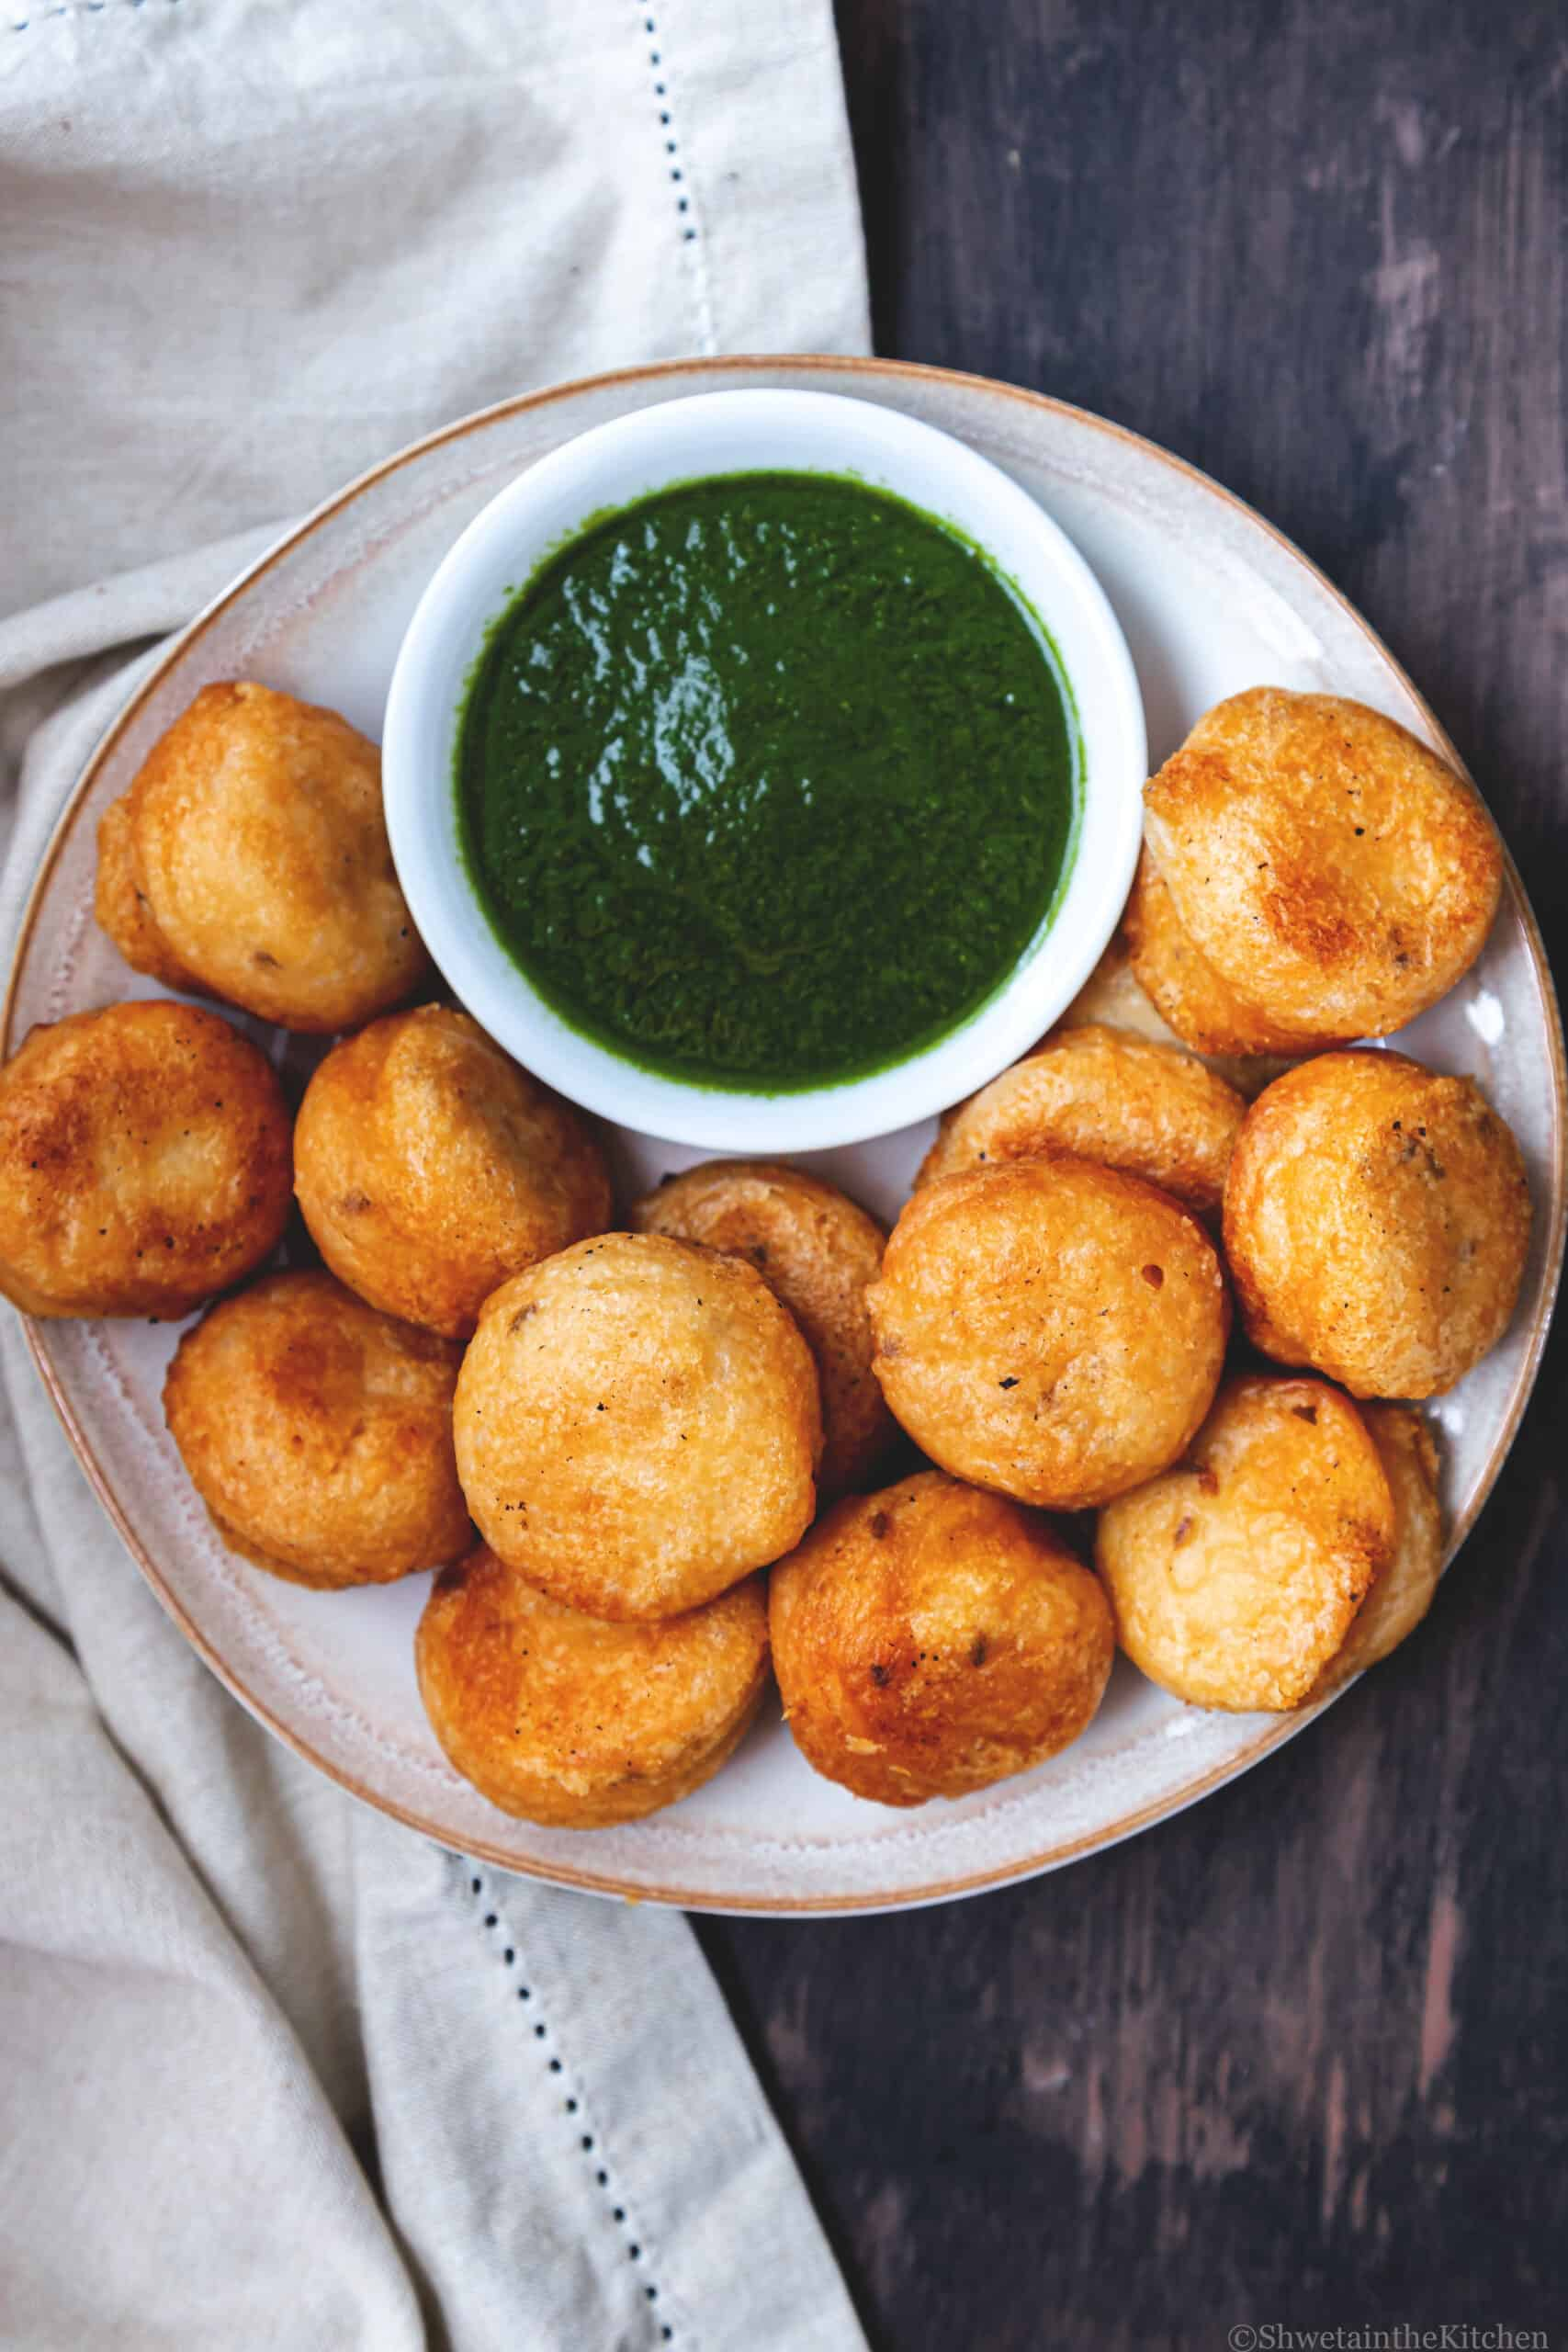 Plate with plain Vada (medhu wada) and bowl of green chutney